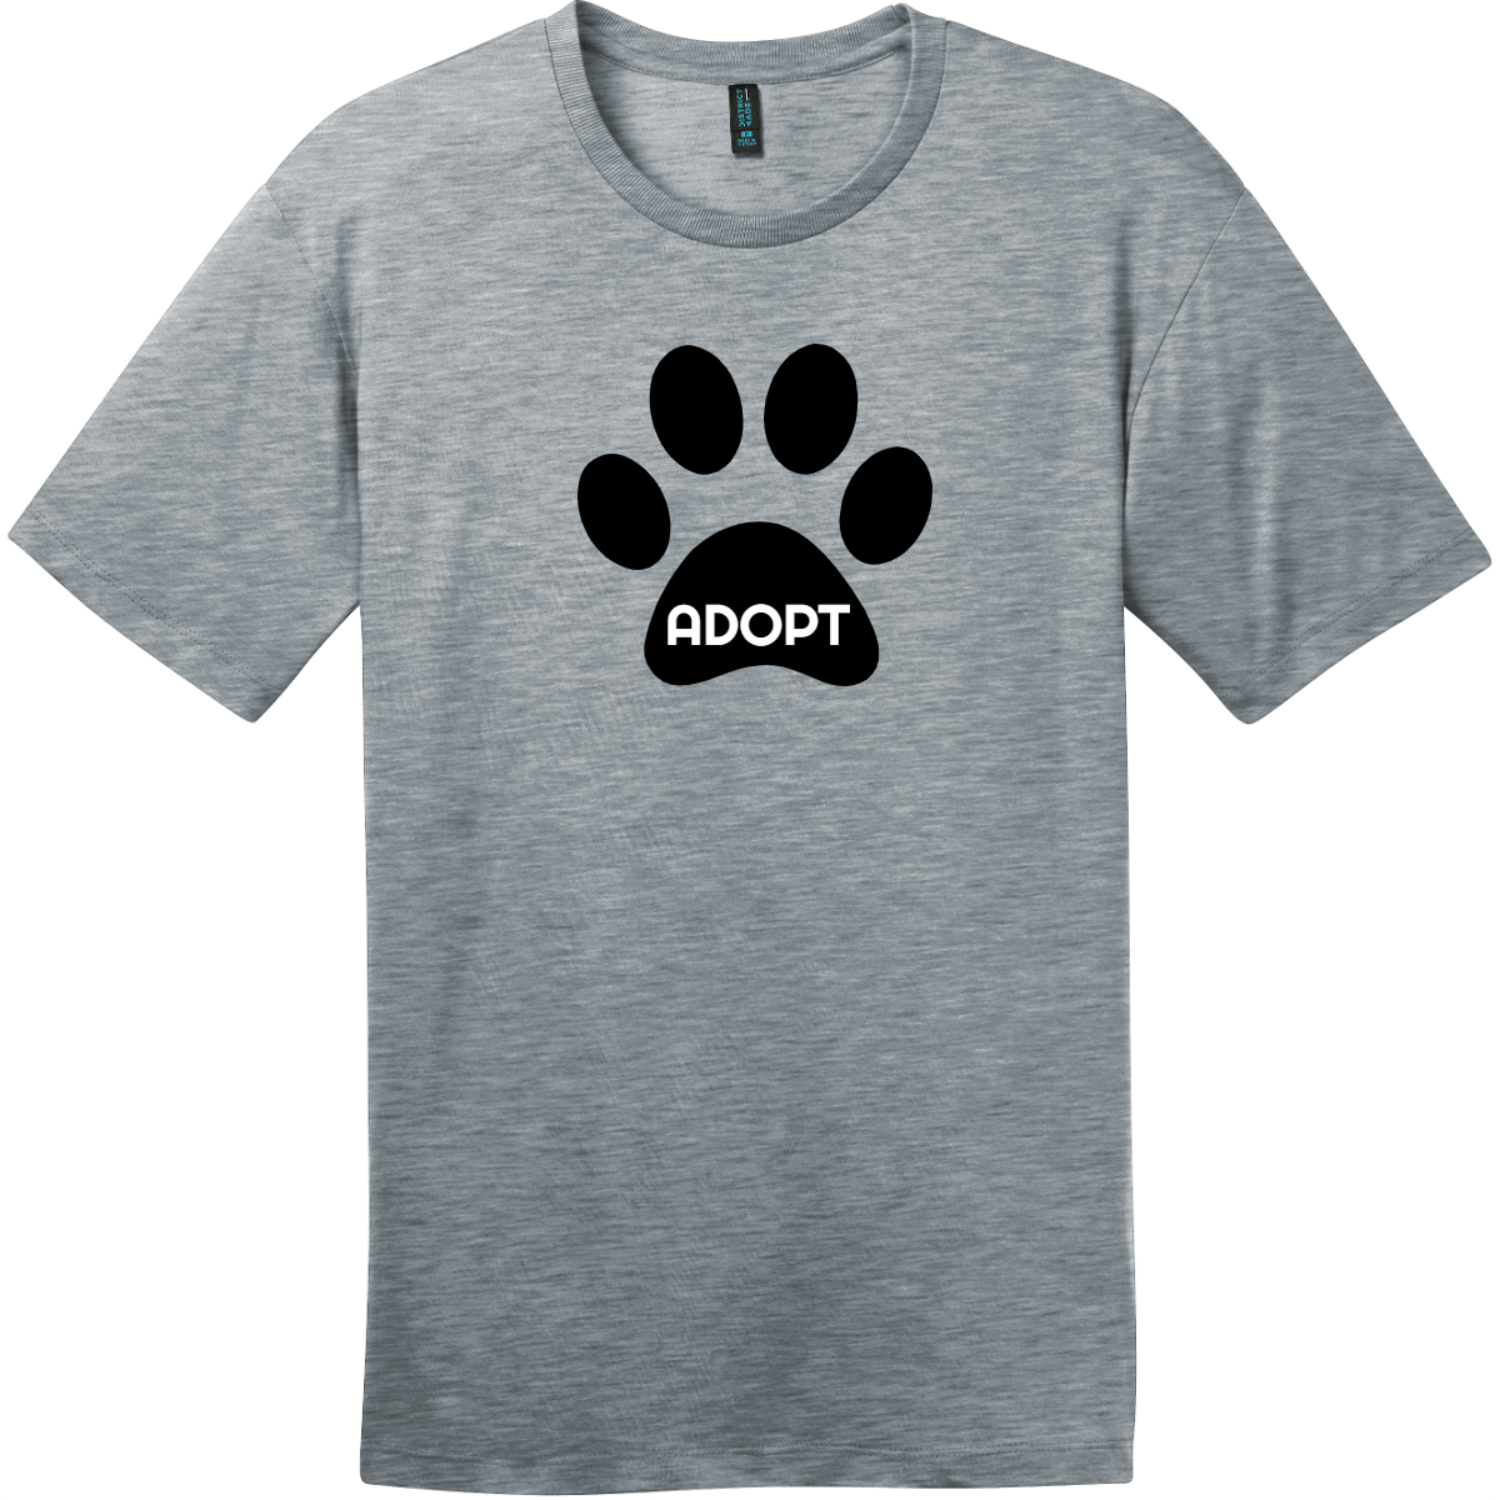 Adopt Pet Paw T-Shirt Heathered Steel District Perfect Weight Tee DT104